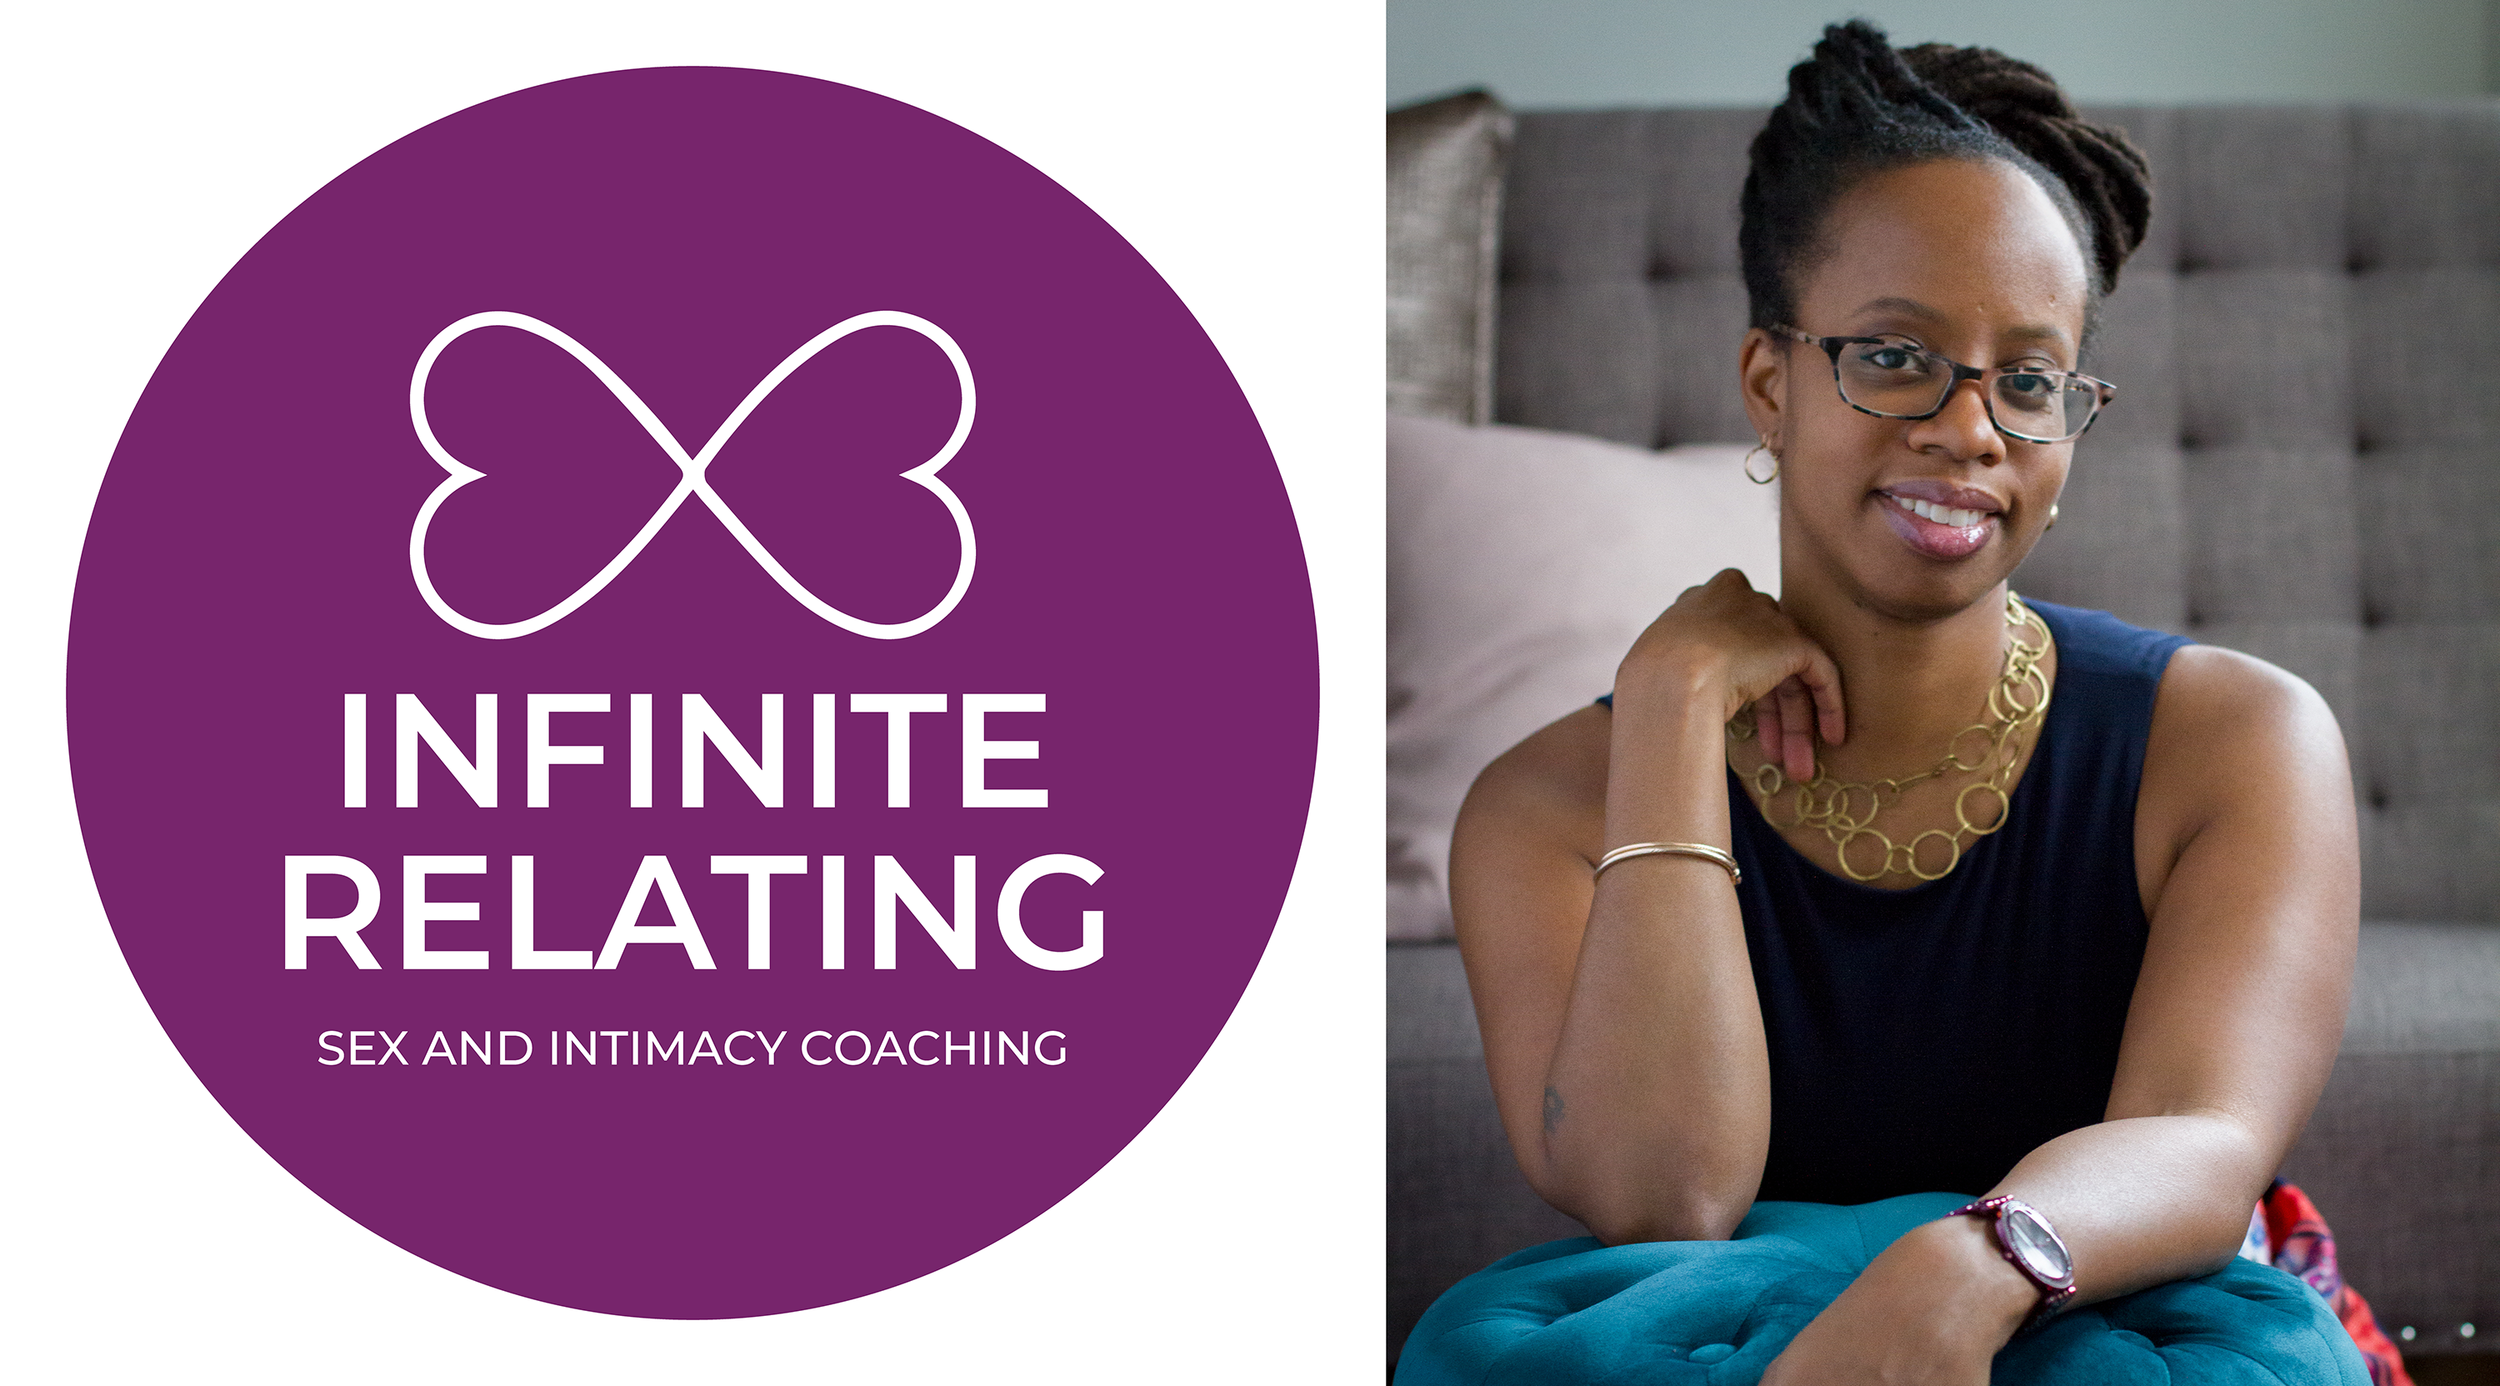 Infinite RElating - Sex and Intimacy CoachingComplimentary 45-min Relationship Visioning Discovery Session ($295 Value)www.InfiniteRelating.com tazima@infiniterelating.com